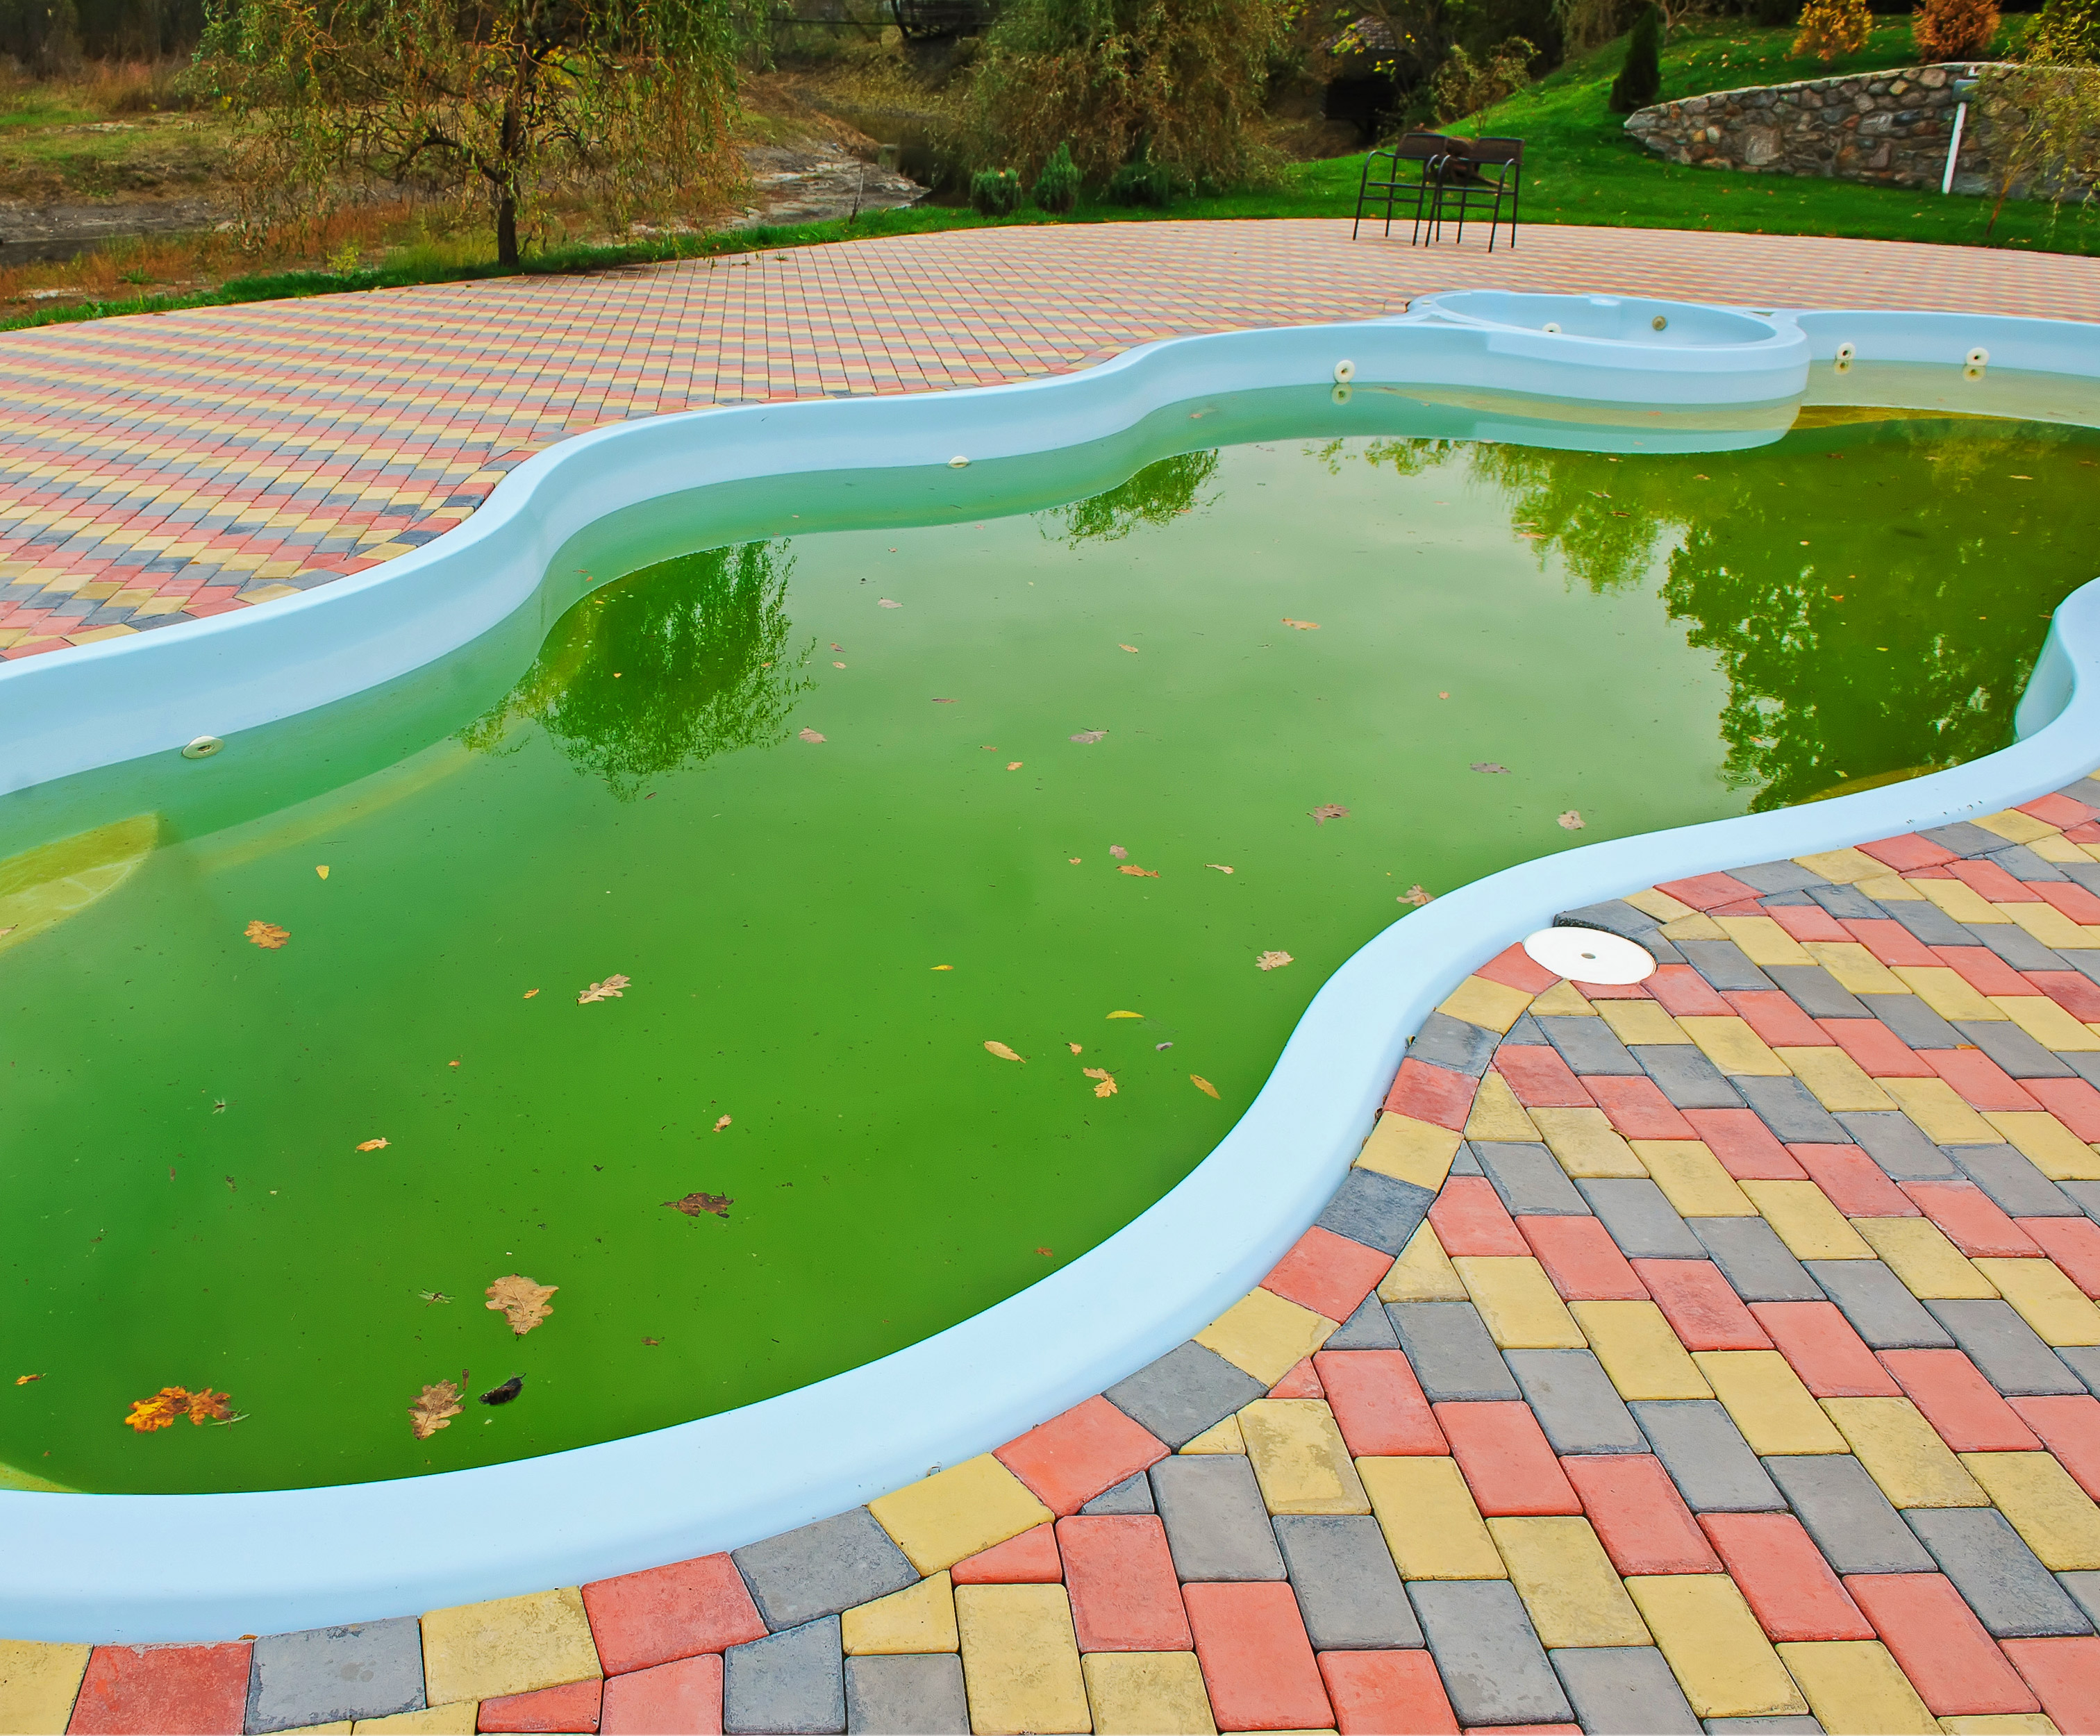 Green pool cleaning in South Florida